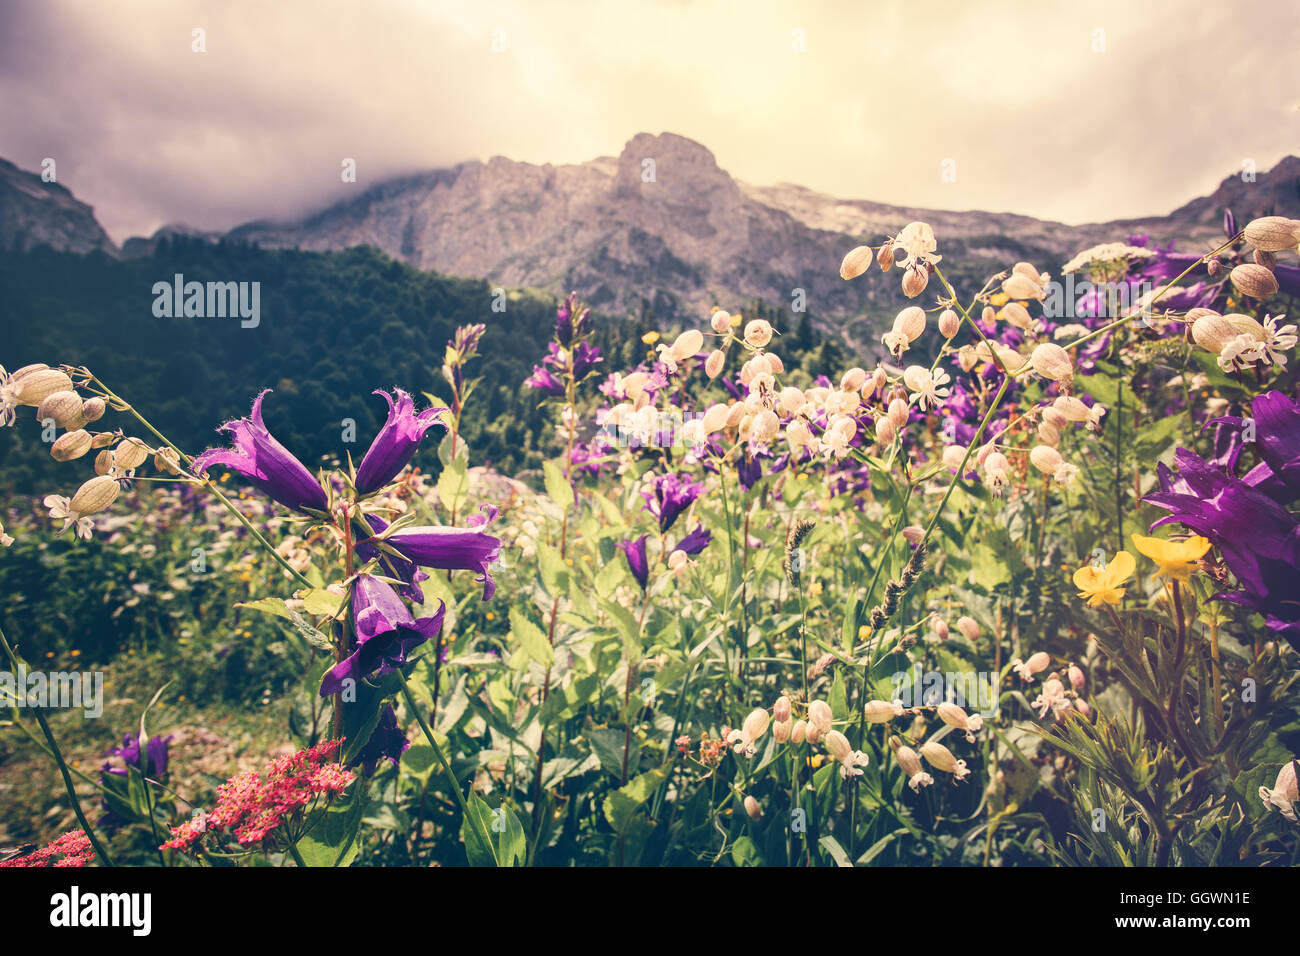 Blooming flowers valley with rocky Fisht Mountains Landscape Summer Travel scenic view  moody cloudy sky - Stock Image